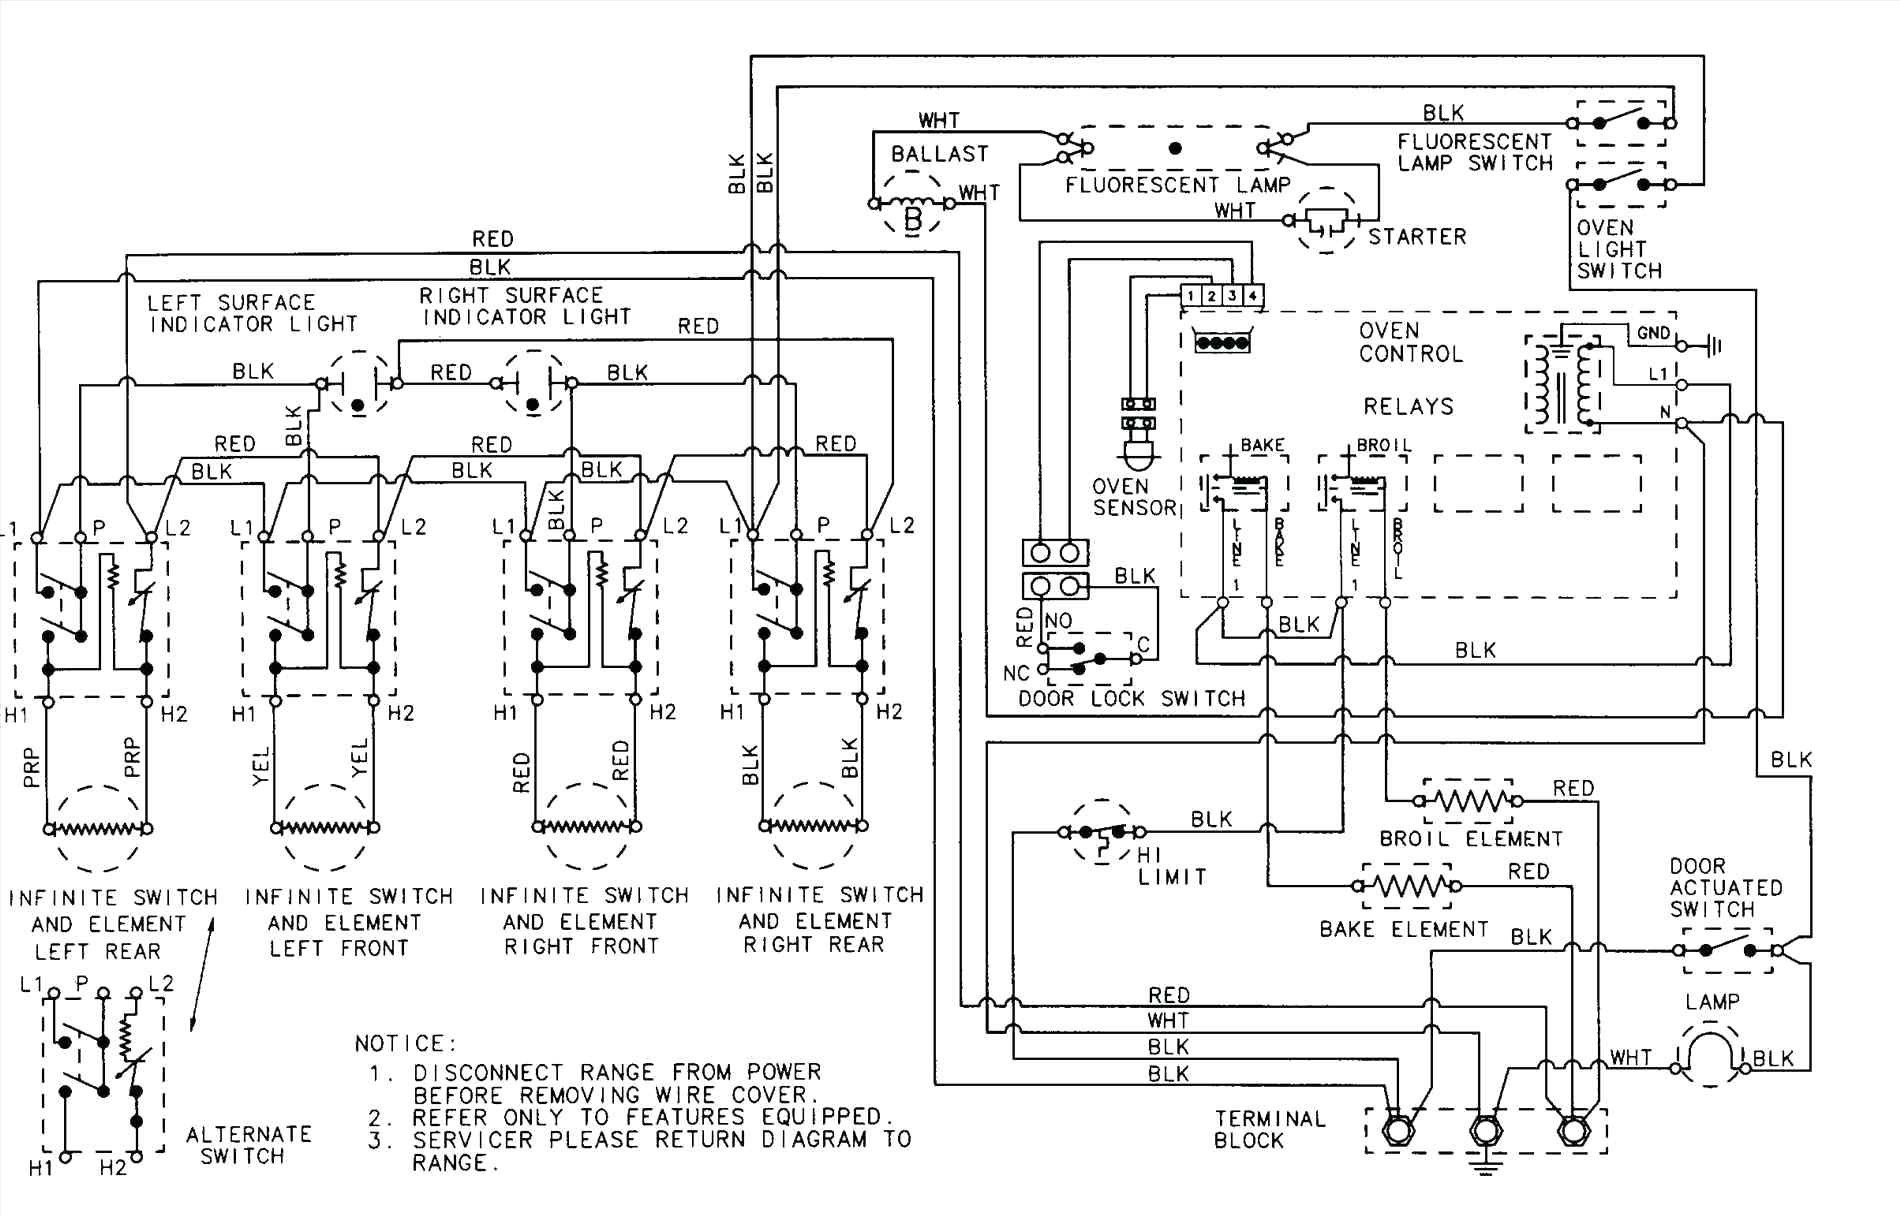 Clothes Dryer Wiring Diagram Ge Electric Dryer Timer Wiring Diagram Free Downloads Ge Dryer Timer Of Clothes Dryer Wiring Diagram